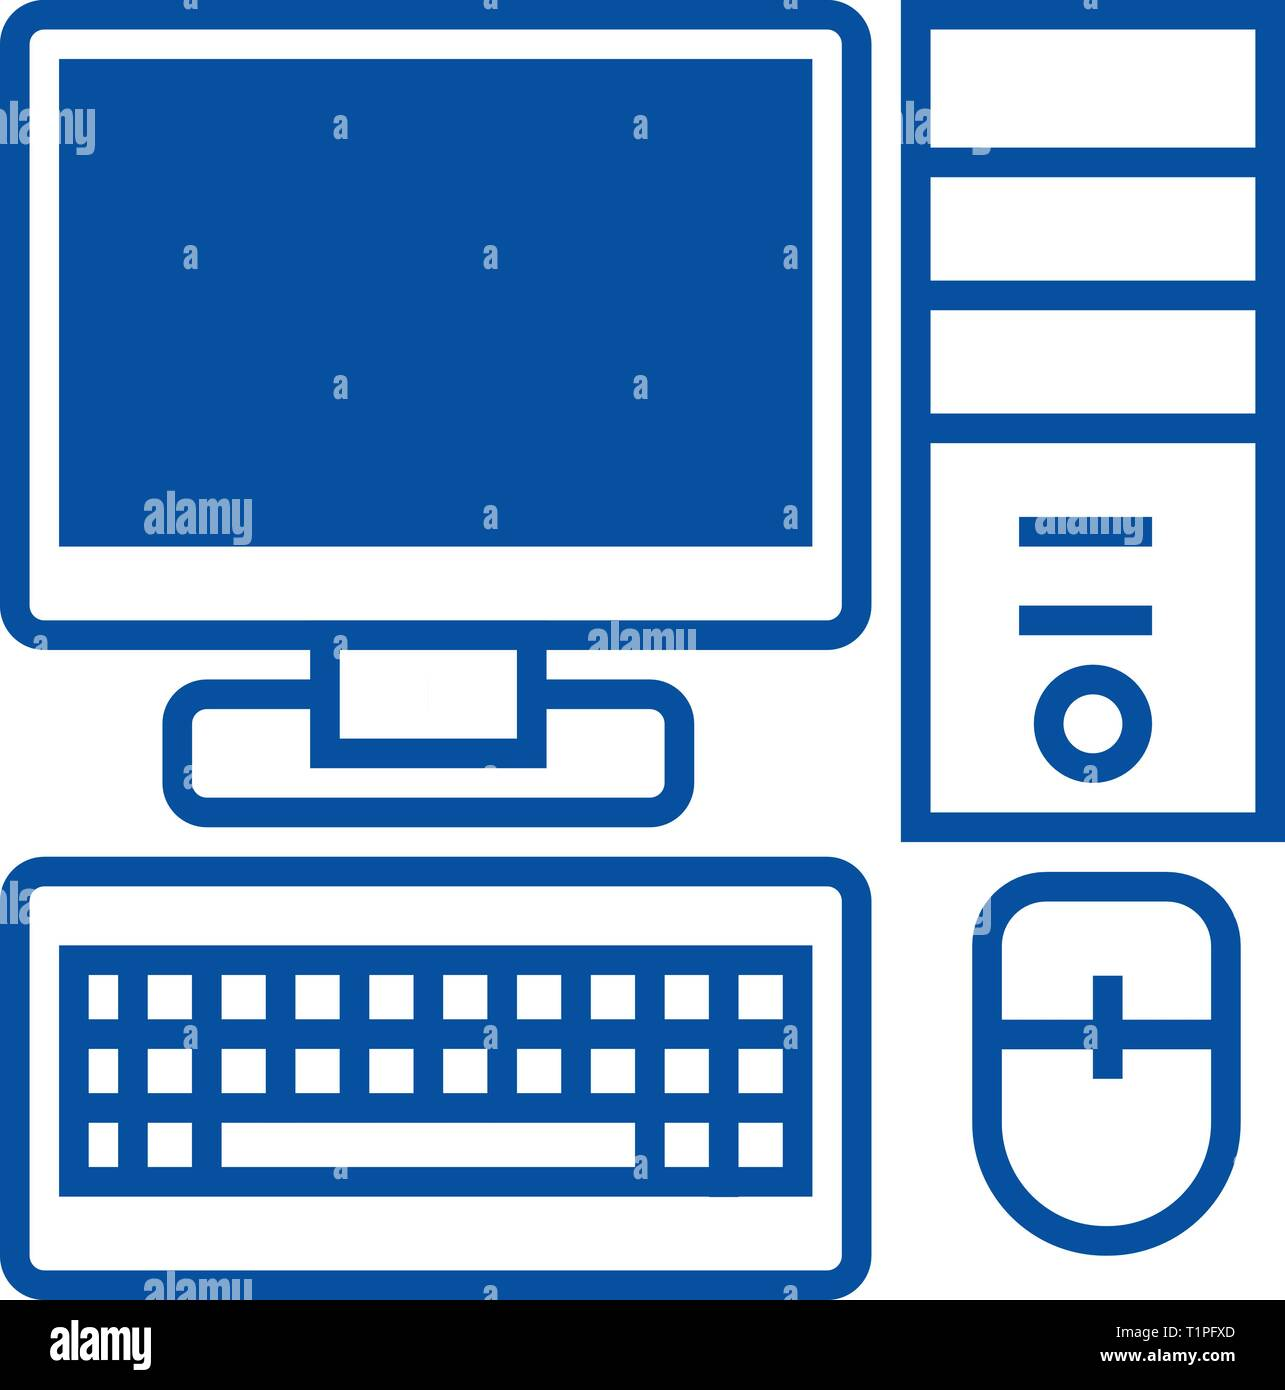 Personal computer,monitor keyboard  line icon concept. Personal computer,monitor keyboard  flat  vector symbol, sign, outline illustration. - Stock Image